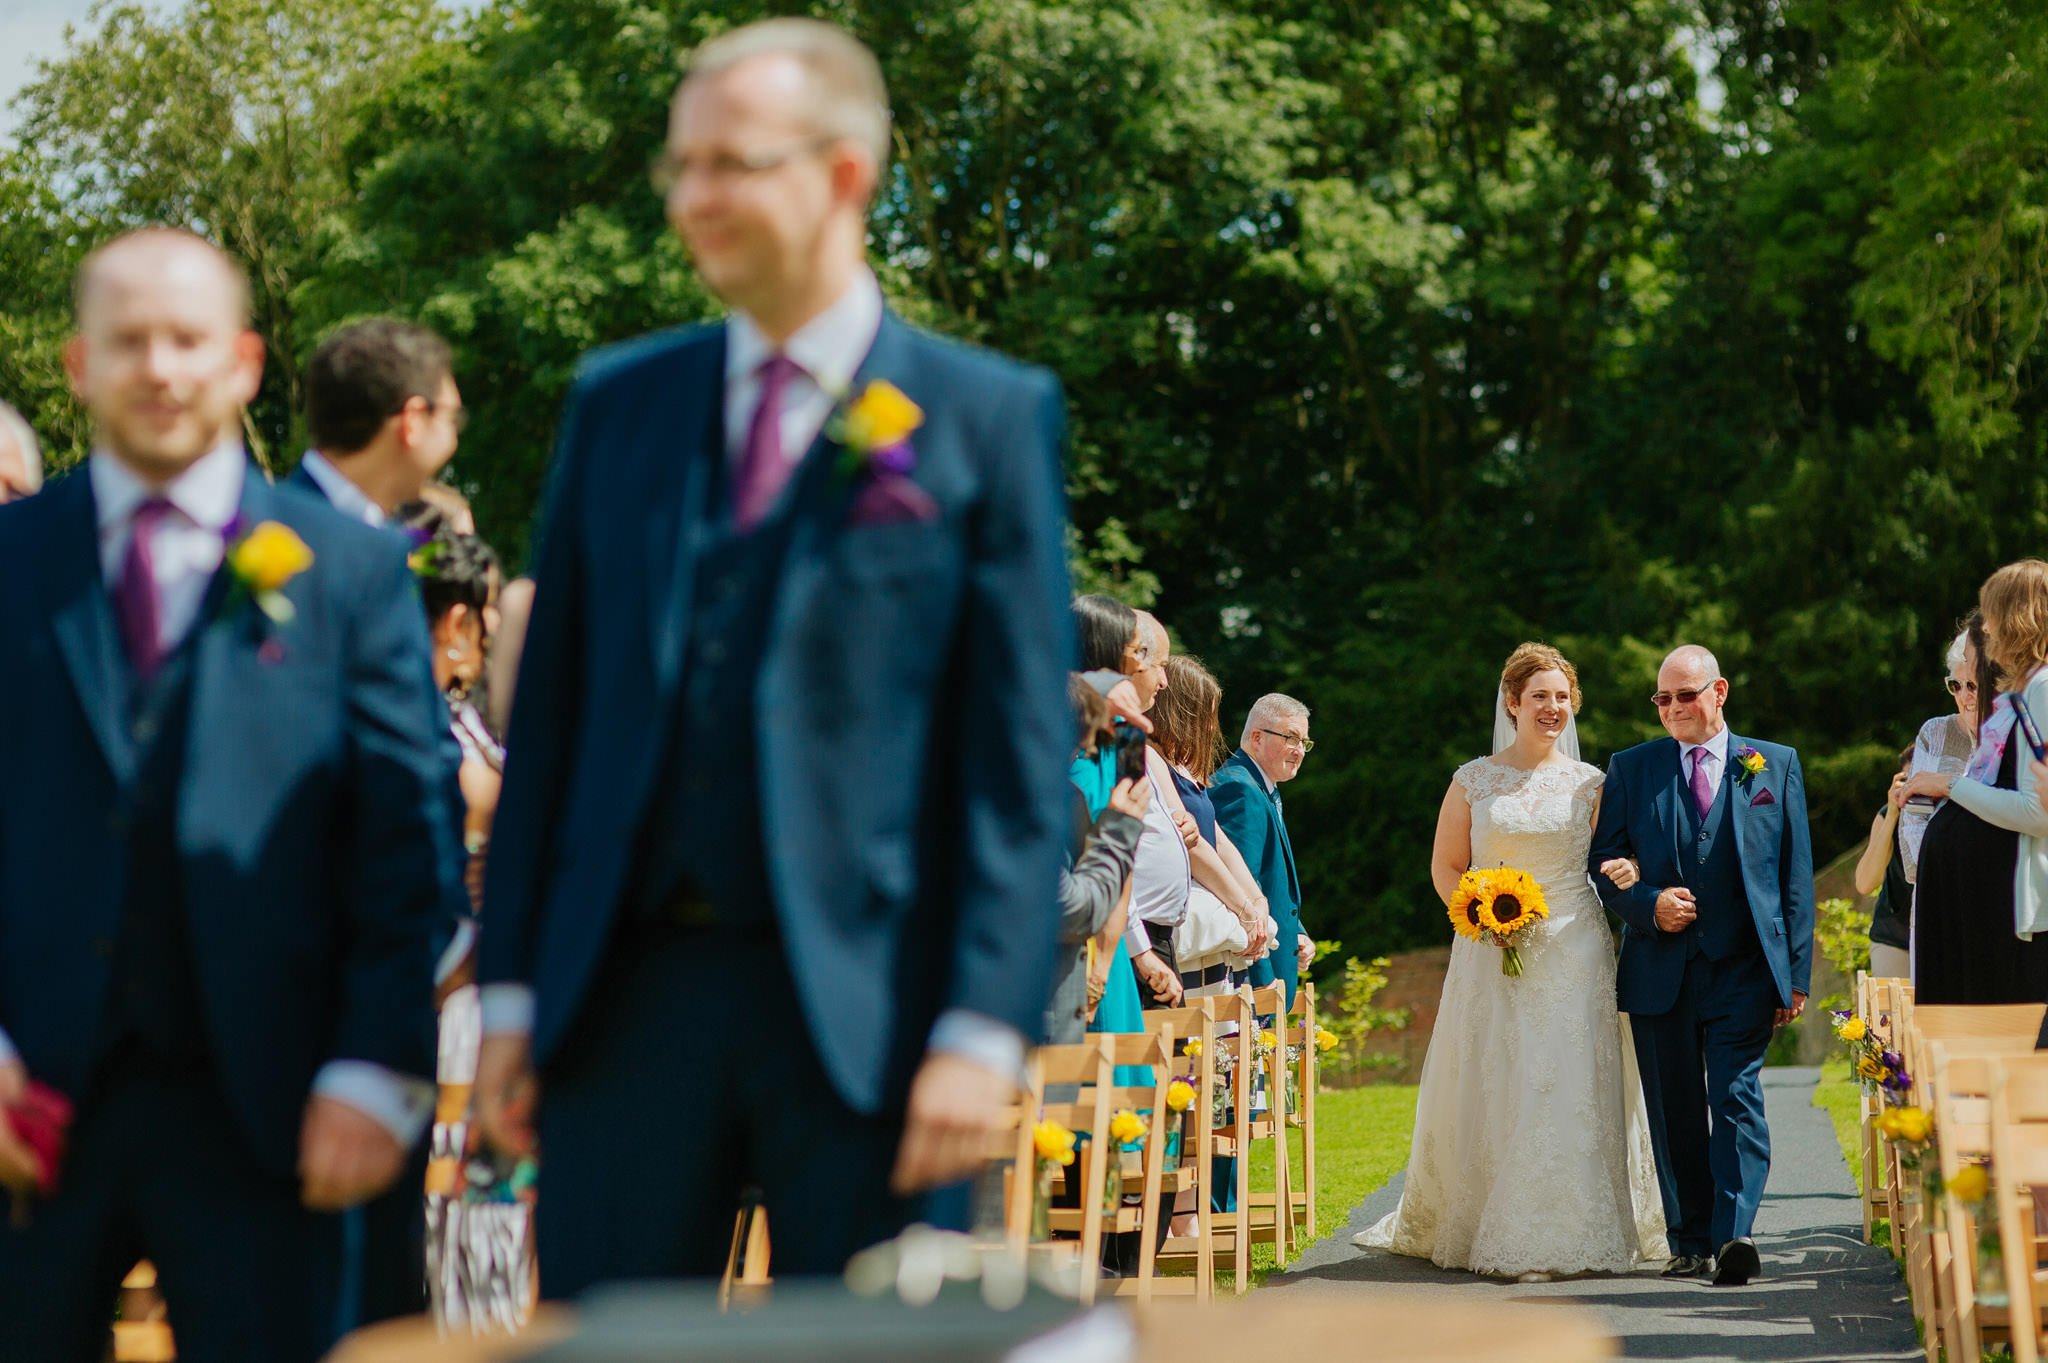 Wedding photography at Homme House in Herefordshire, West Midlands 26